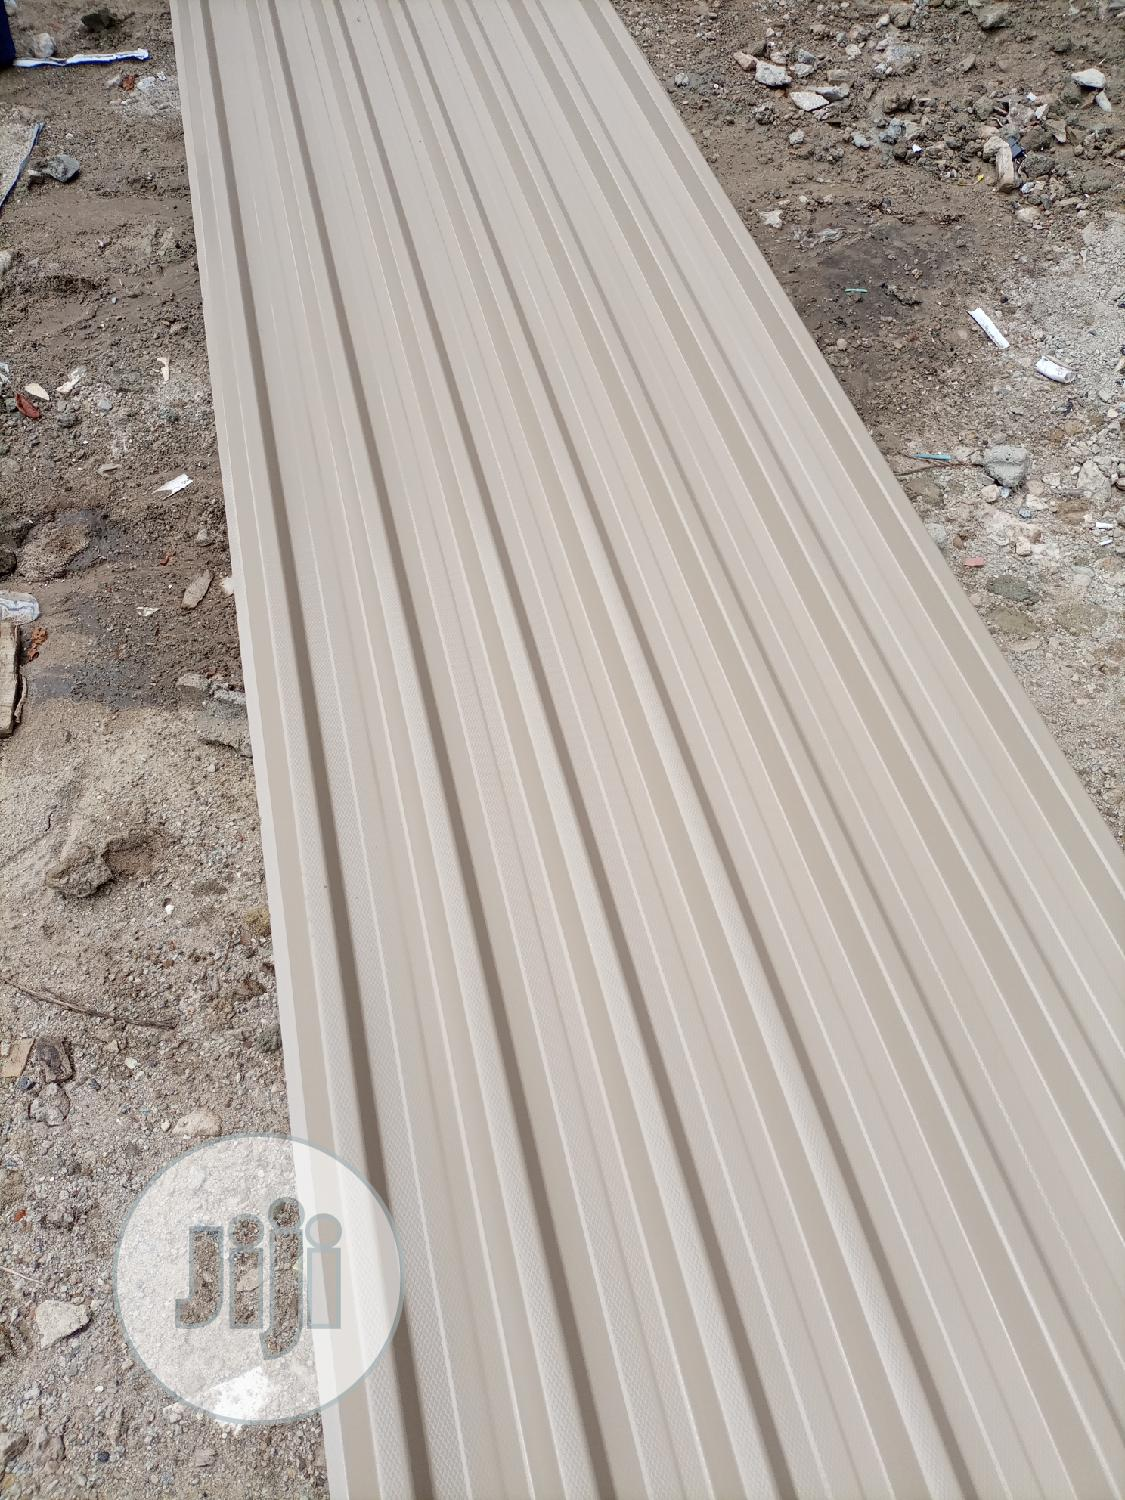 Amazing And Affordable Price Of Aluminum Roofing Sheet | Building Materials for sale in Ajah, Lagos State, Nigeria